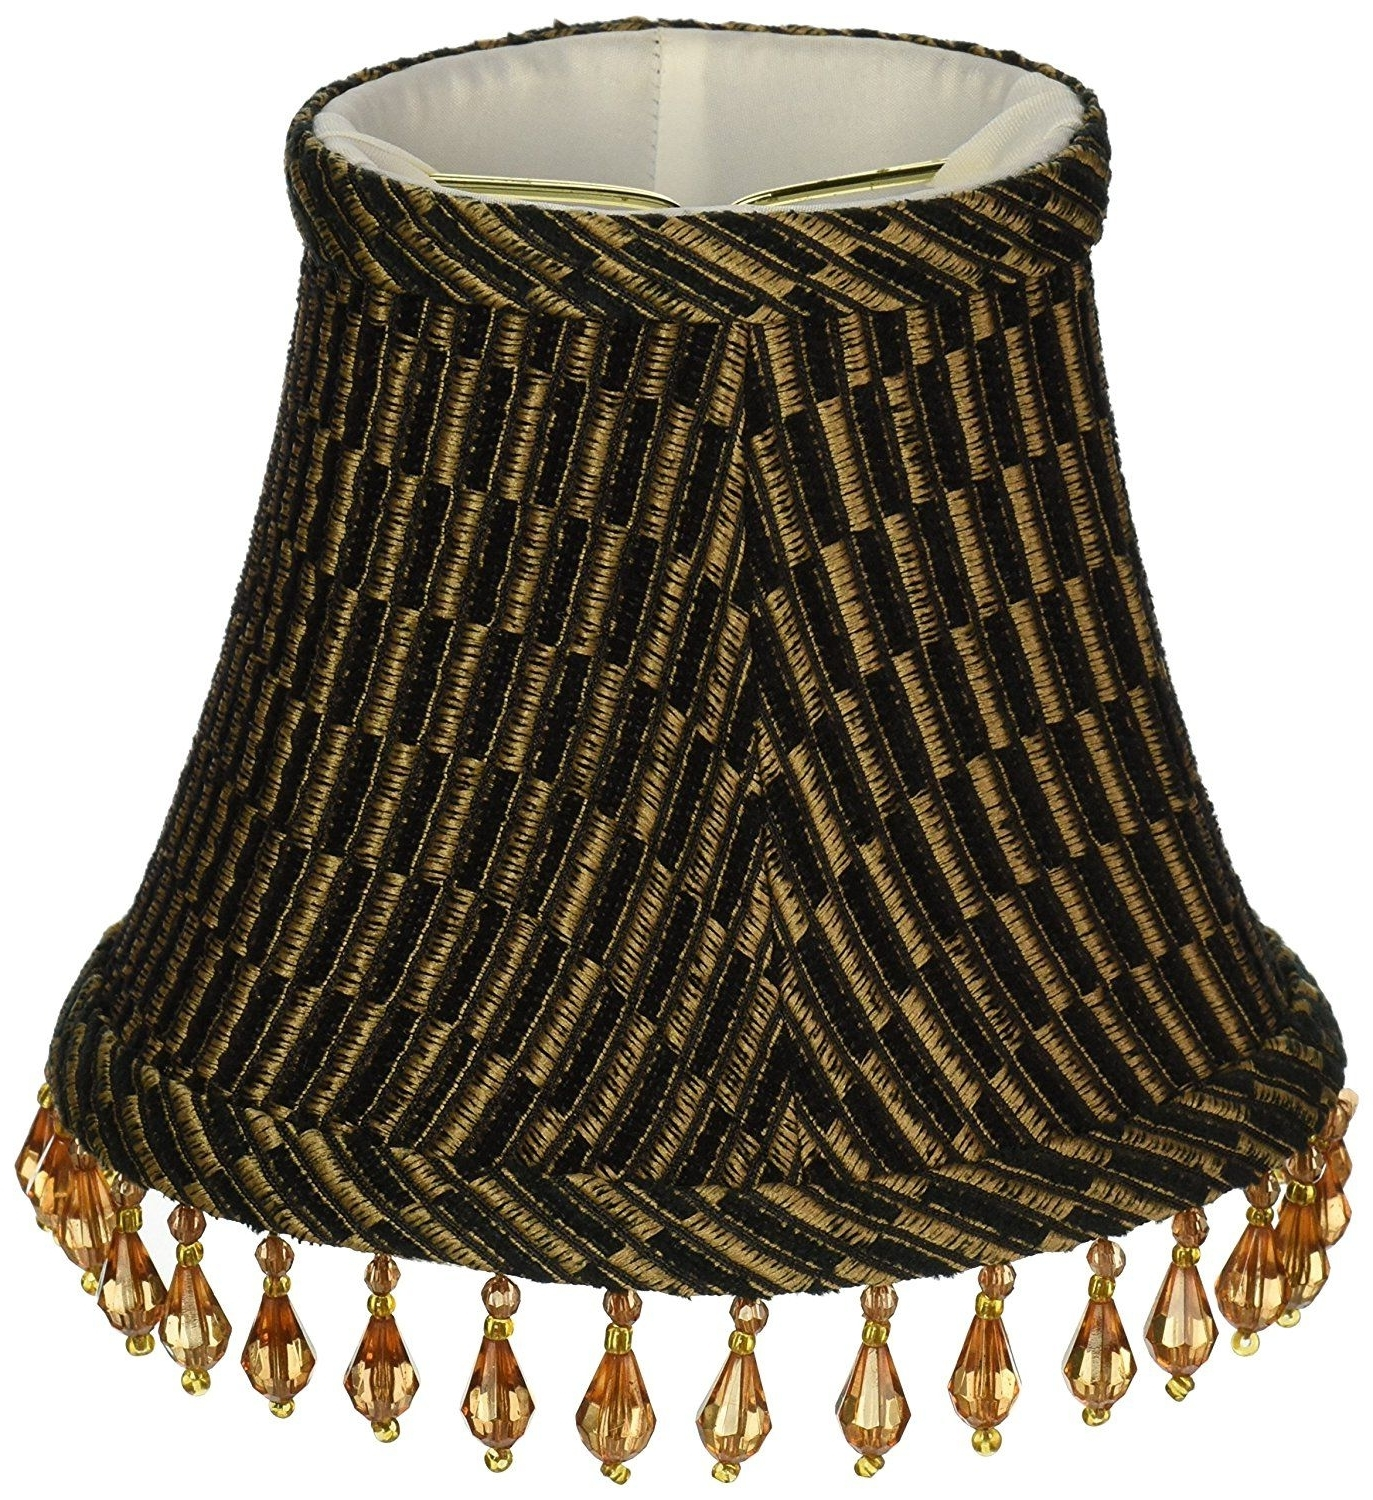 2017 Clip On Chandelier Lamp Shades In Lamp: Chandelier Lamp Shades Upgradelights Set Of 6 Barrel Shades  (View 1 of 15)